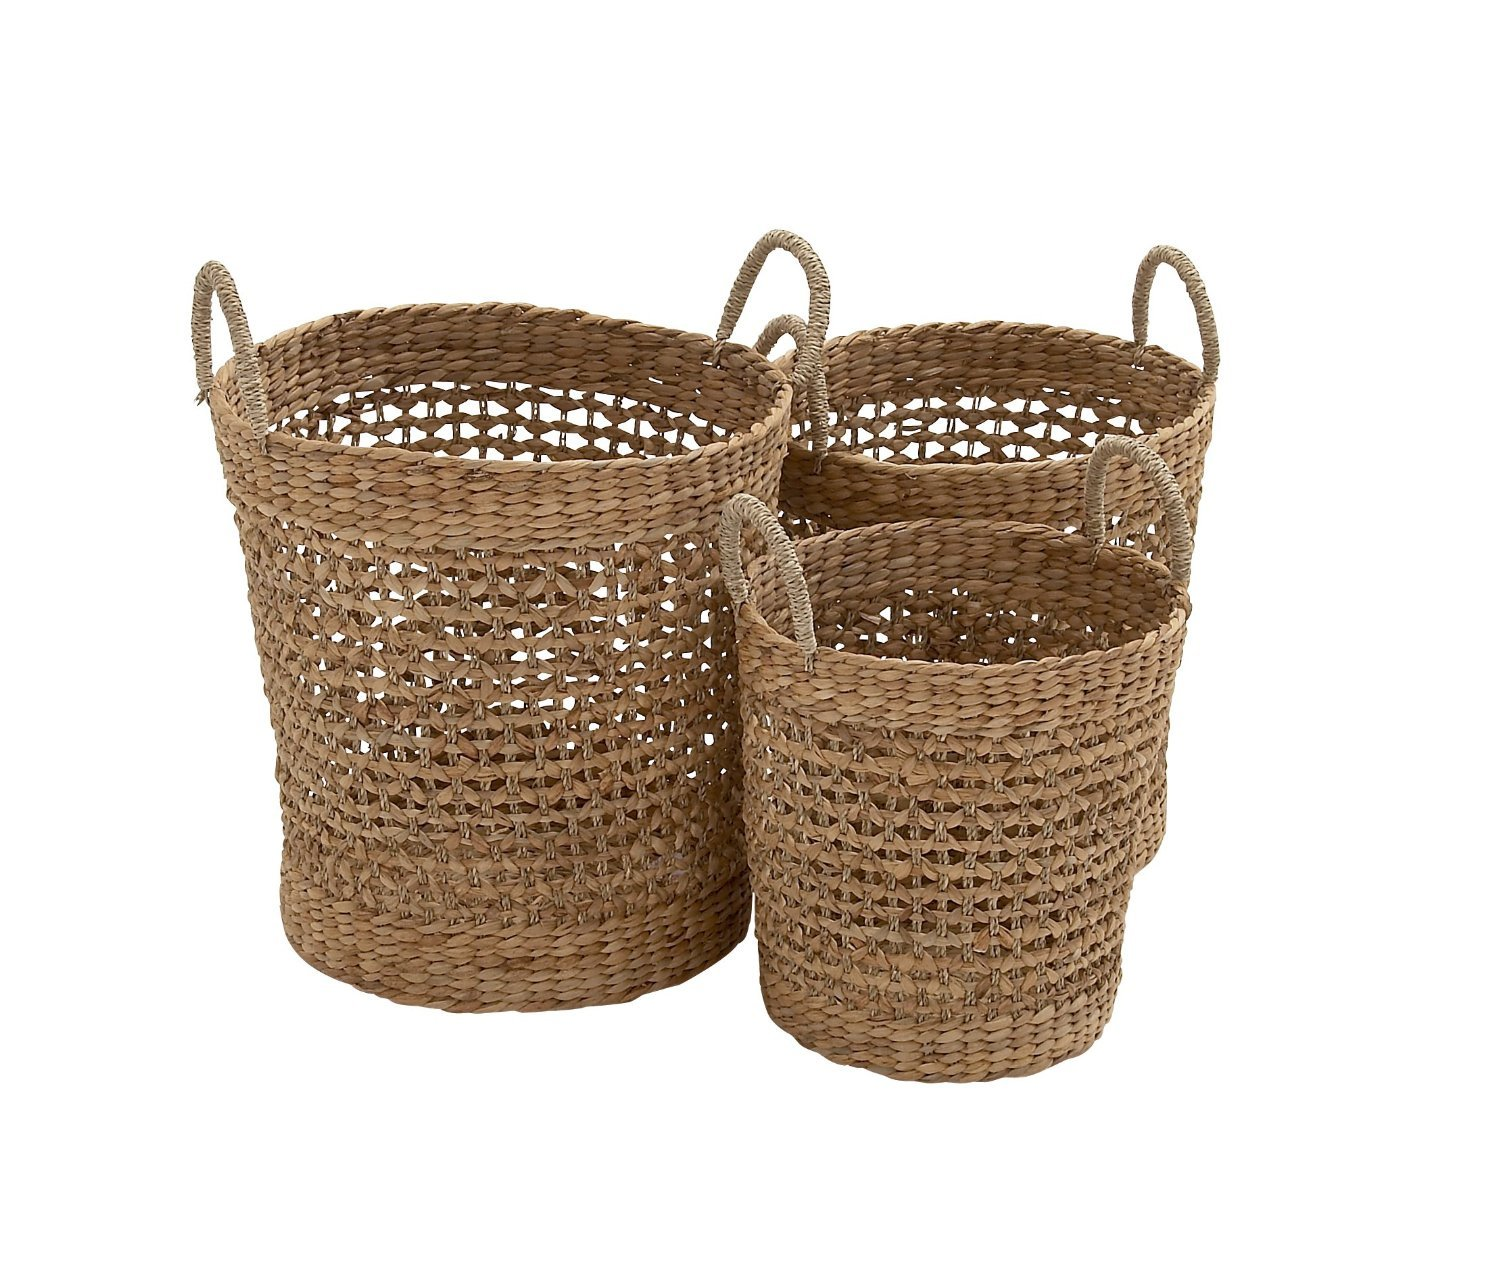 SEAGRASS BASKET S/3 21'', 18'', 16''H